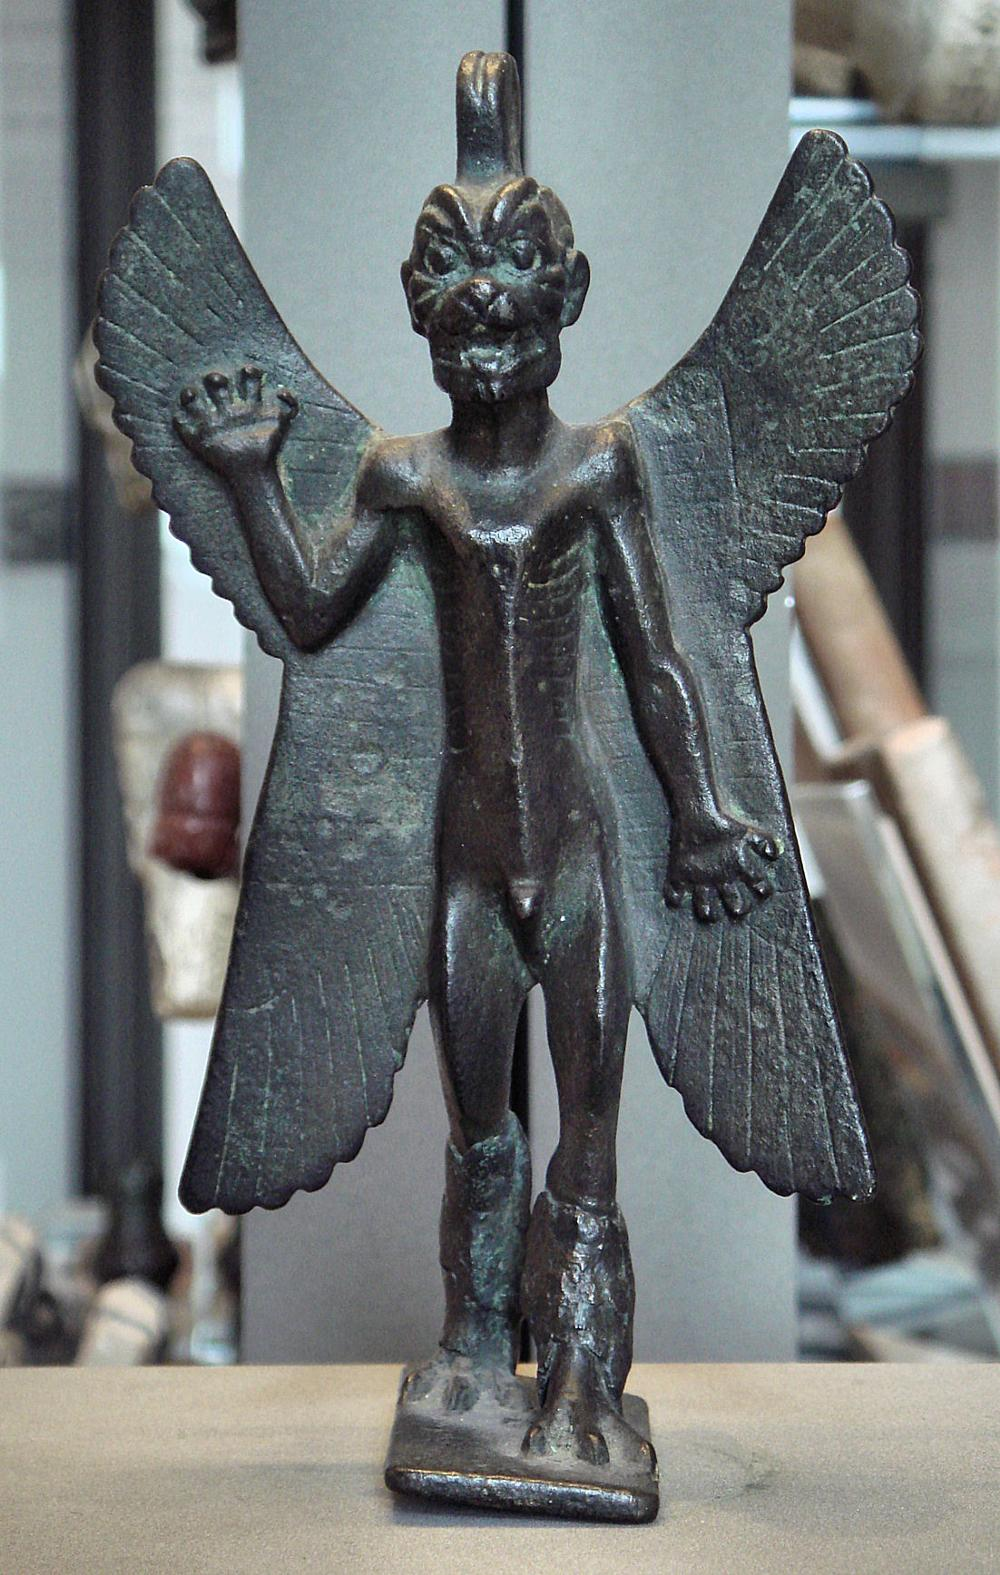 Pazuzu figurine in Louvre.